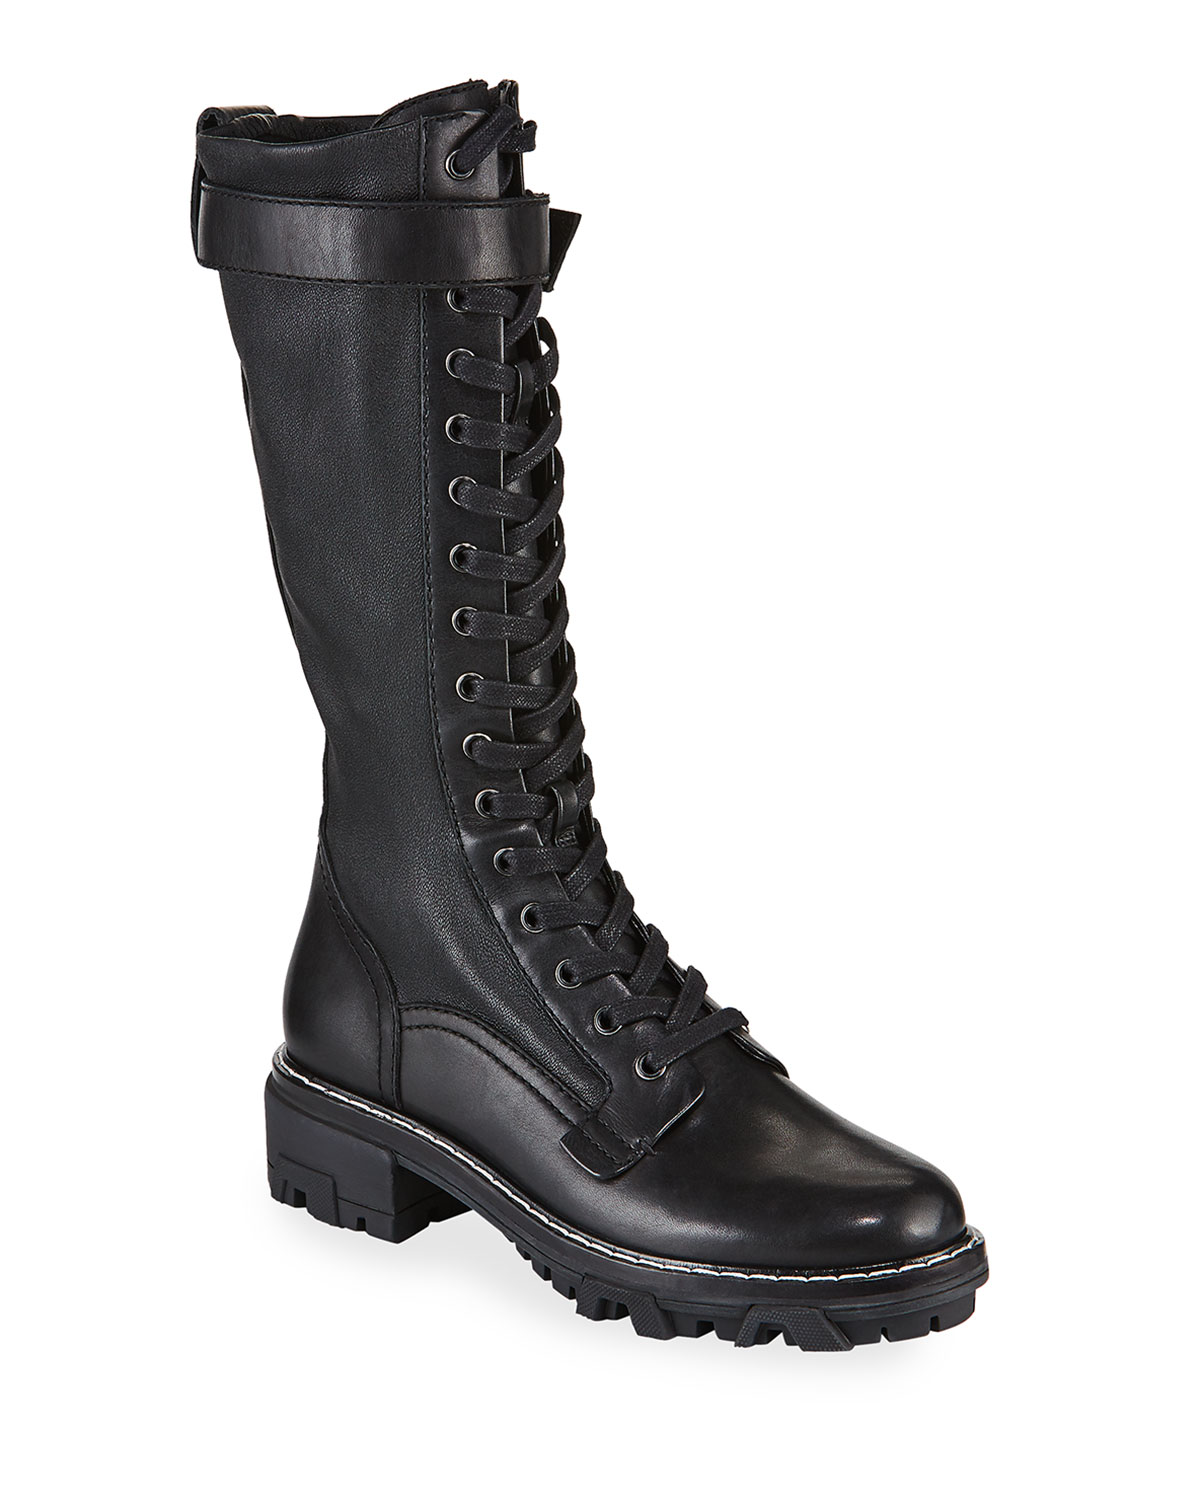 CUSTOM COMBAT BOOTS REAL LEATHER LACE UP L@@K